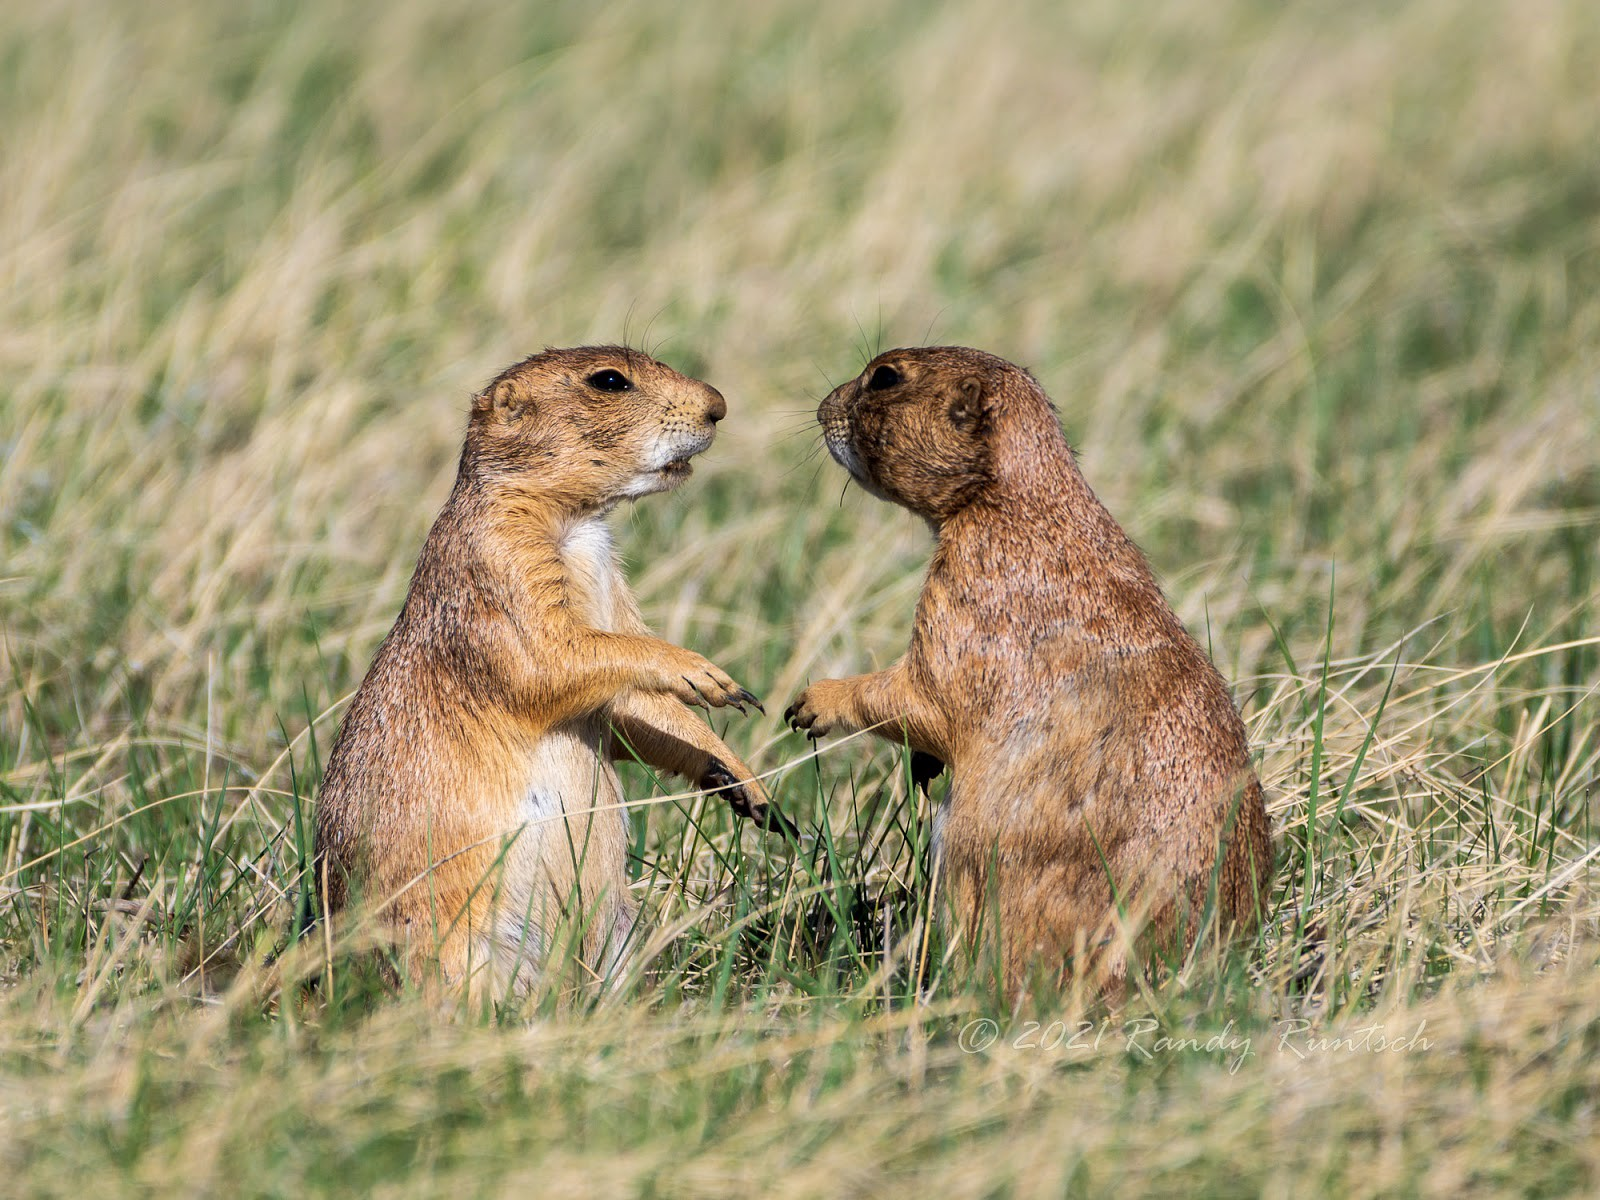 Could these prairie dogs be having a conversation? Photo by the author.